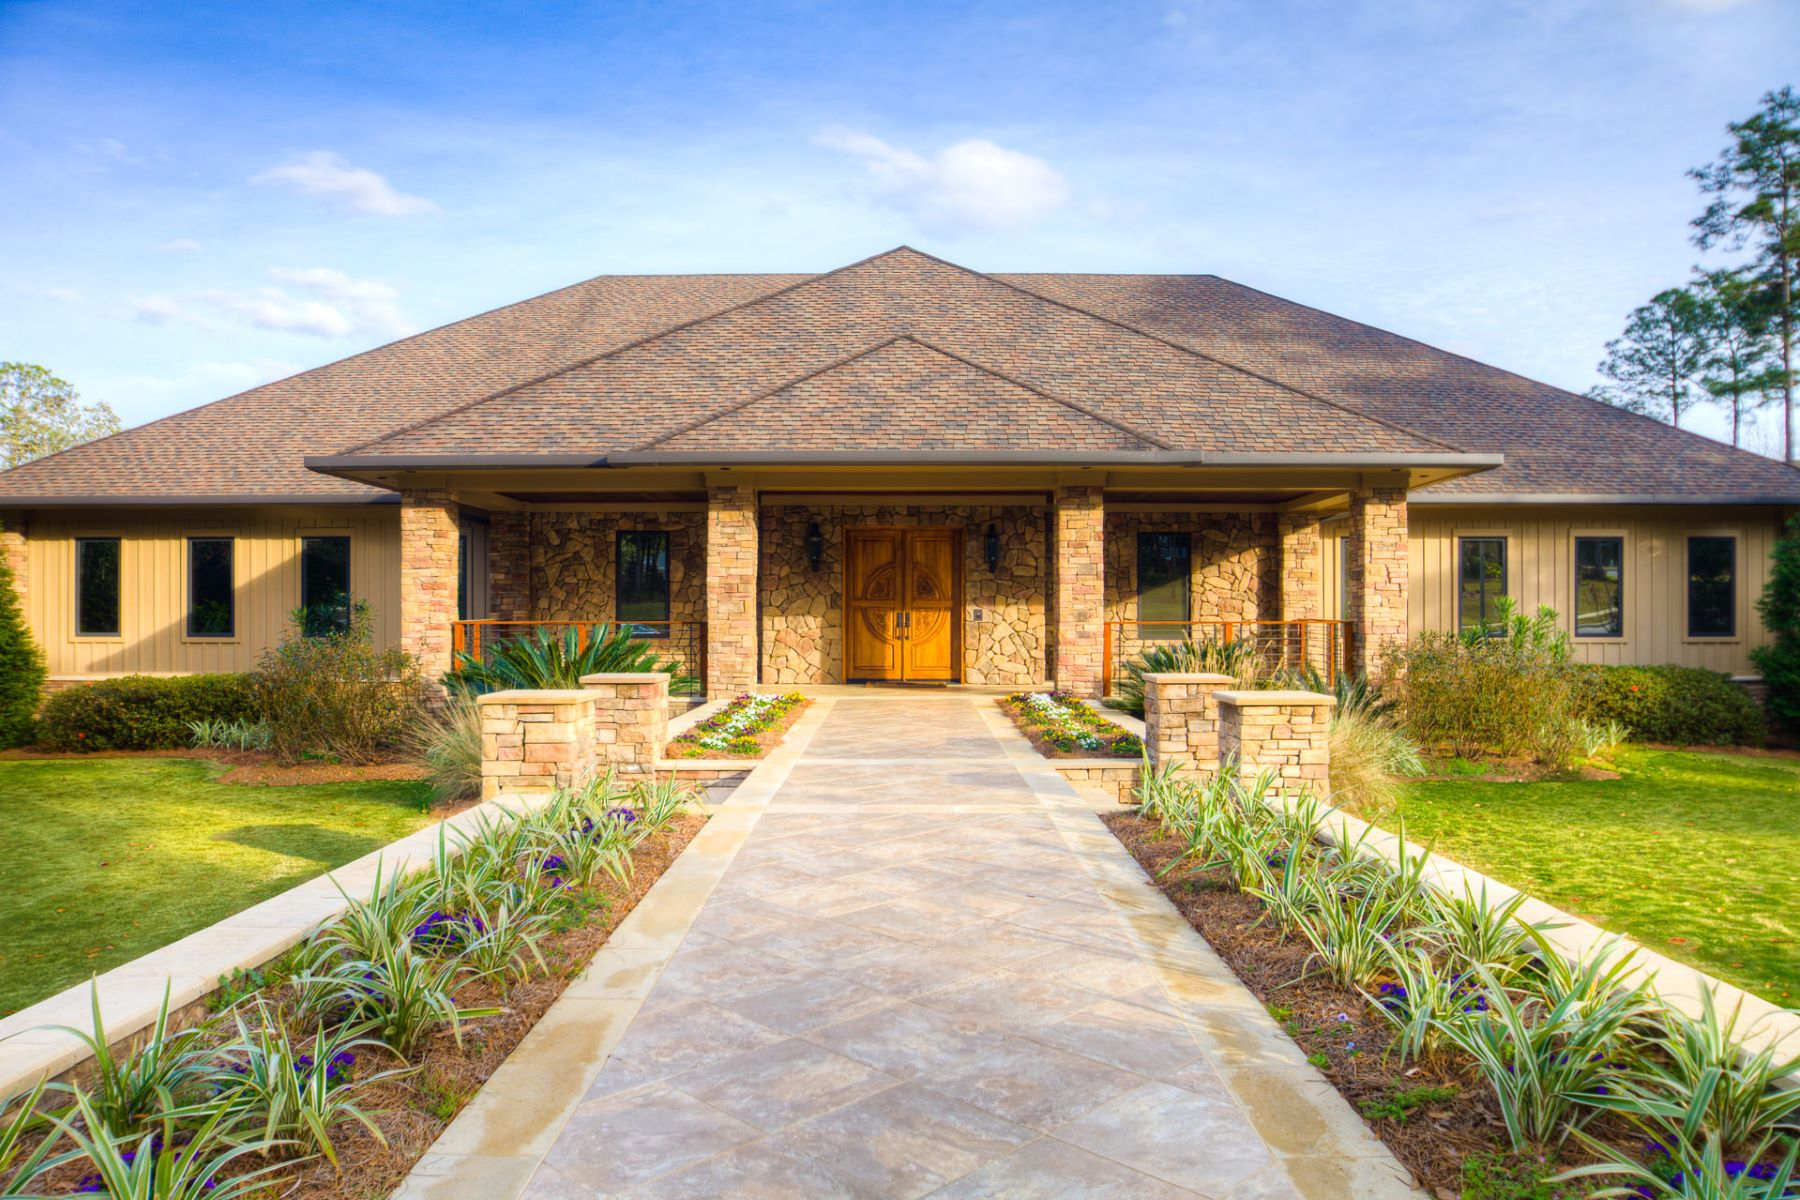 Single Family Home for Active at 2531 E Colonnades Drive Mobile, Alabama 36695 United States